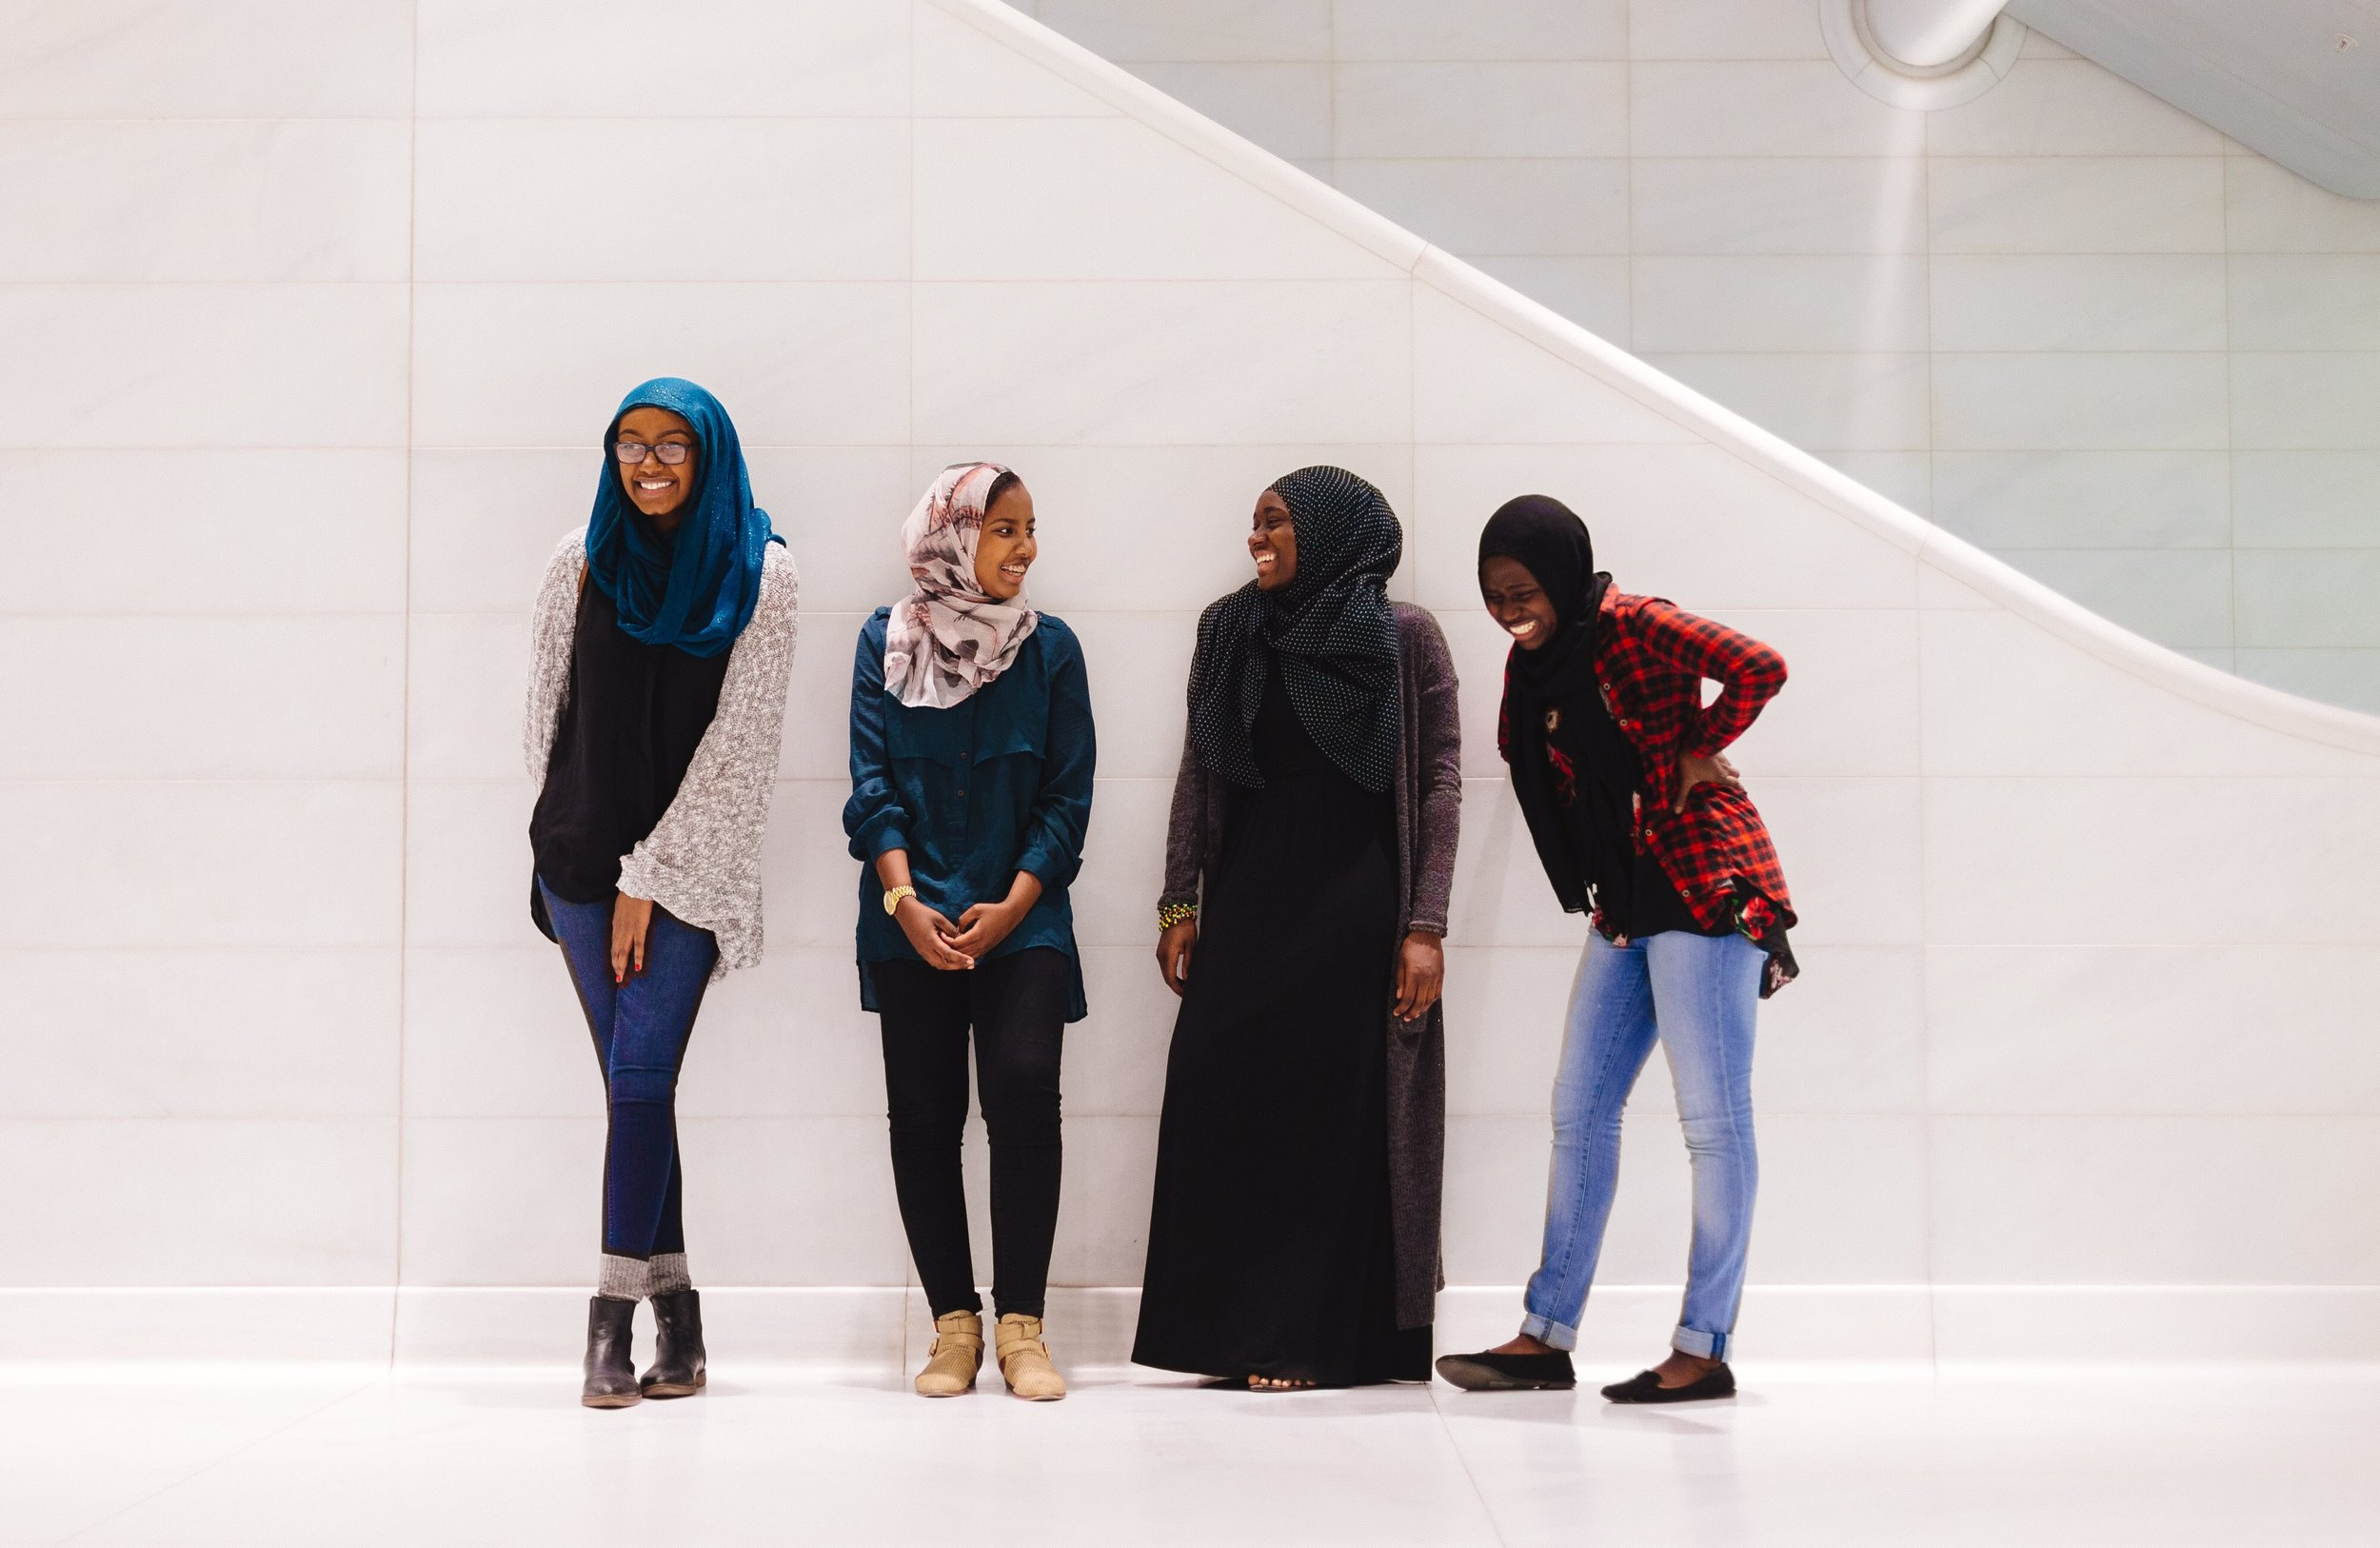 NYU students Bayan Abubakr, Fadumo Osman, Isatou Daffeh, and Mariyamou Drammeh share a laugh in a train station in New York City. Photo by Emilio Madrid-Kuser